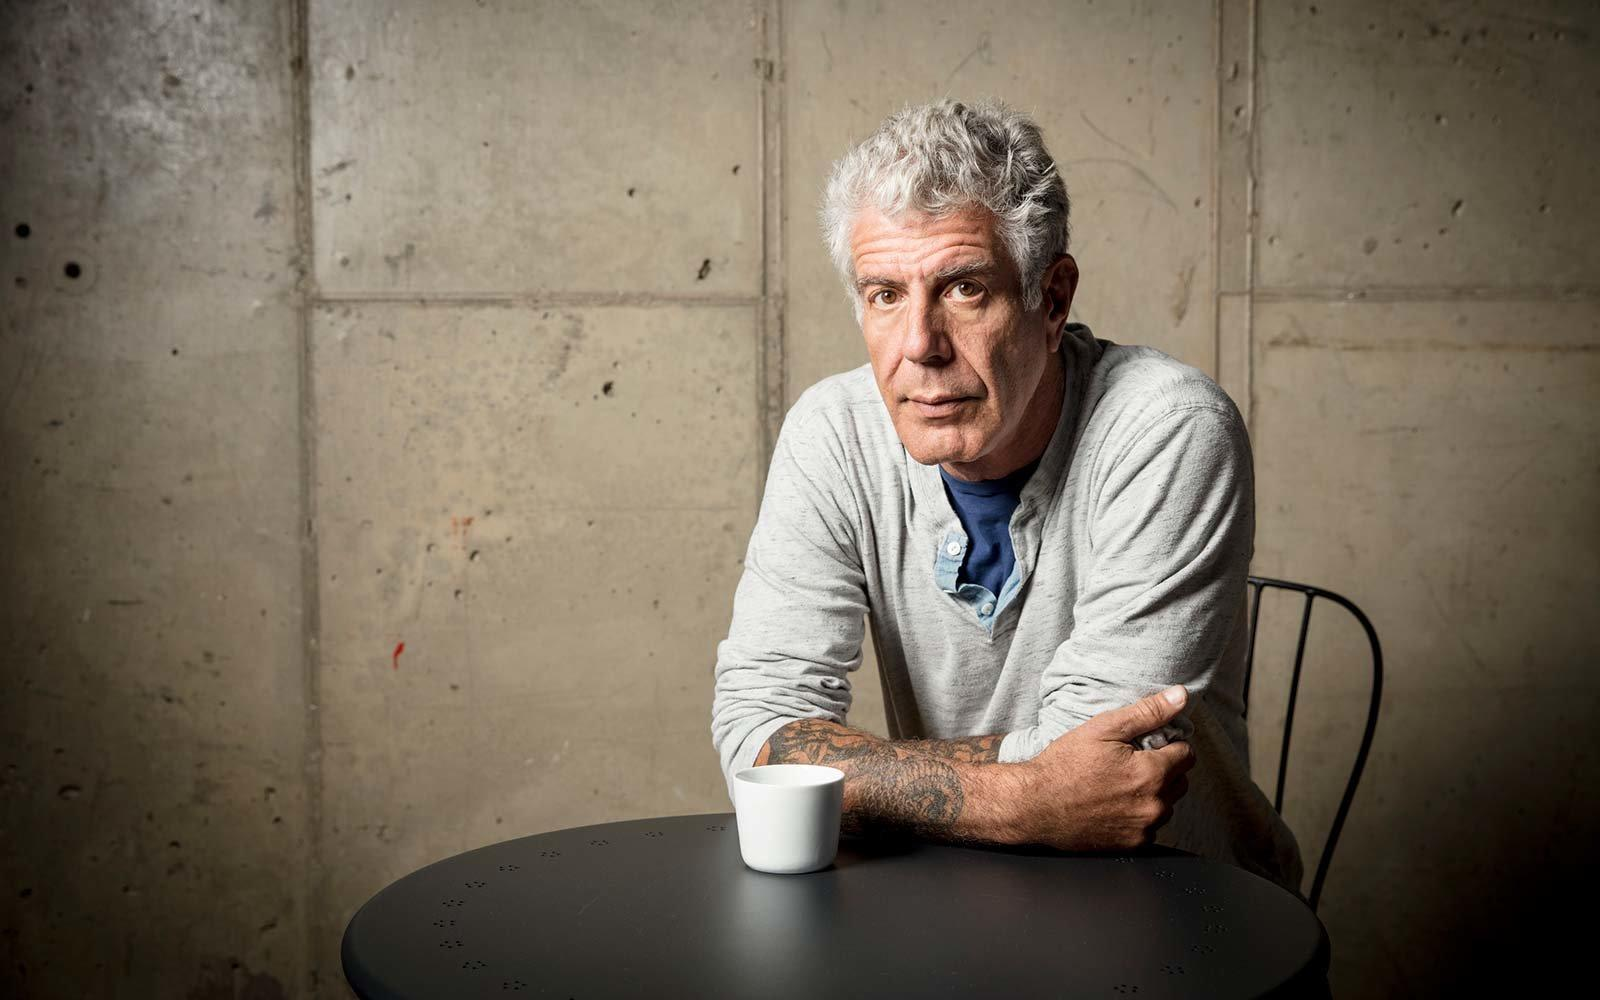 El popular chef Anthony Bourdain se suicida a los 61 años